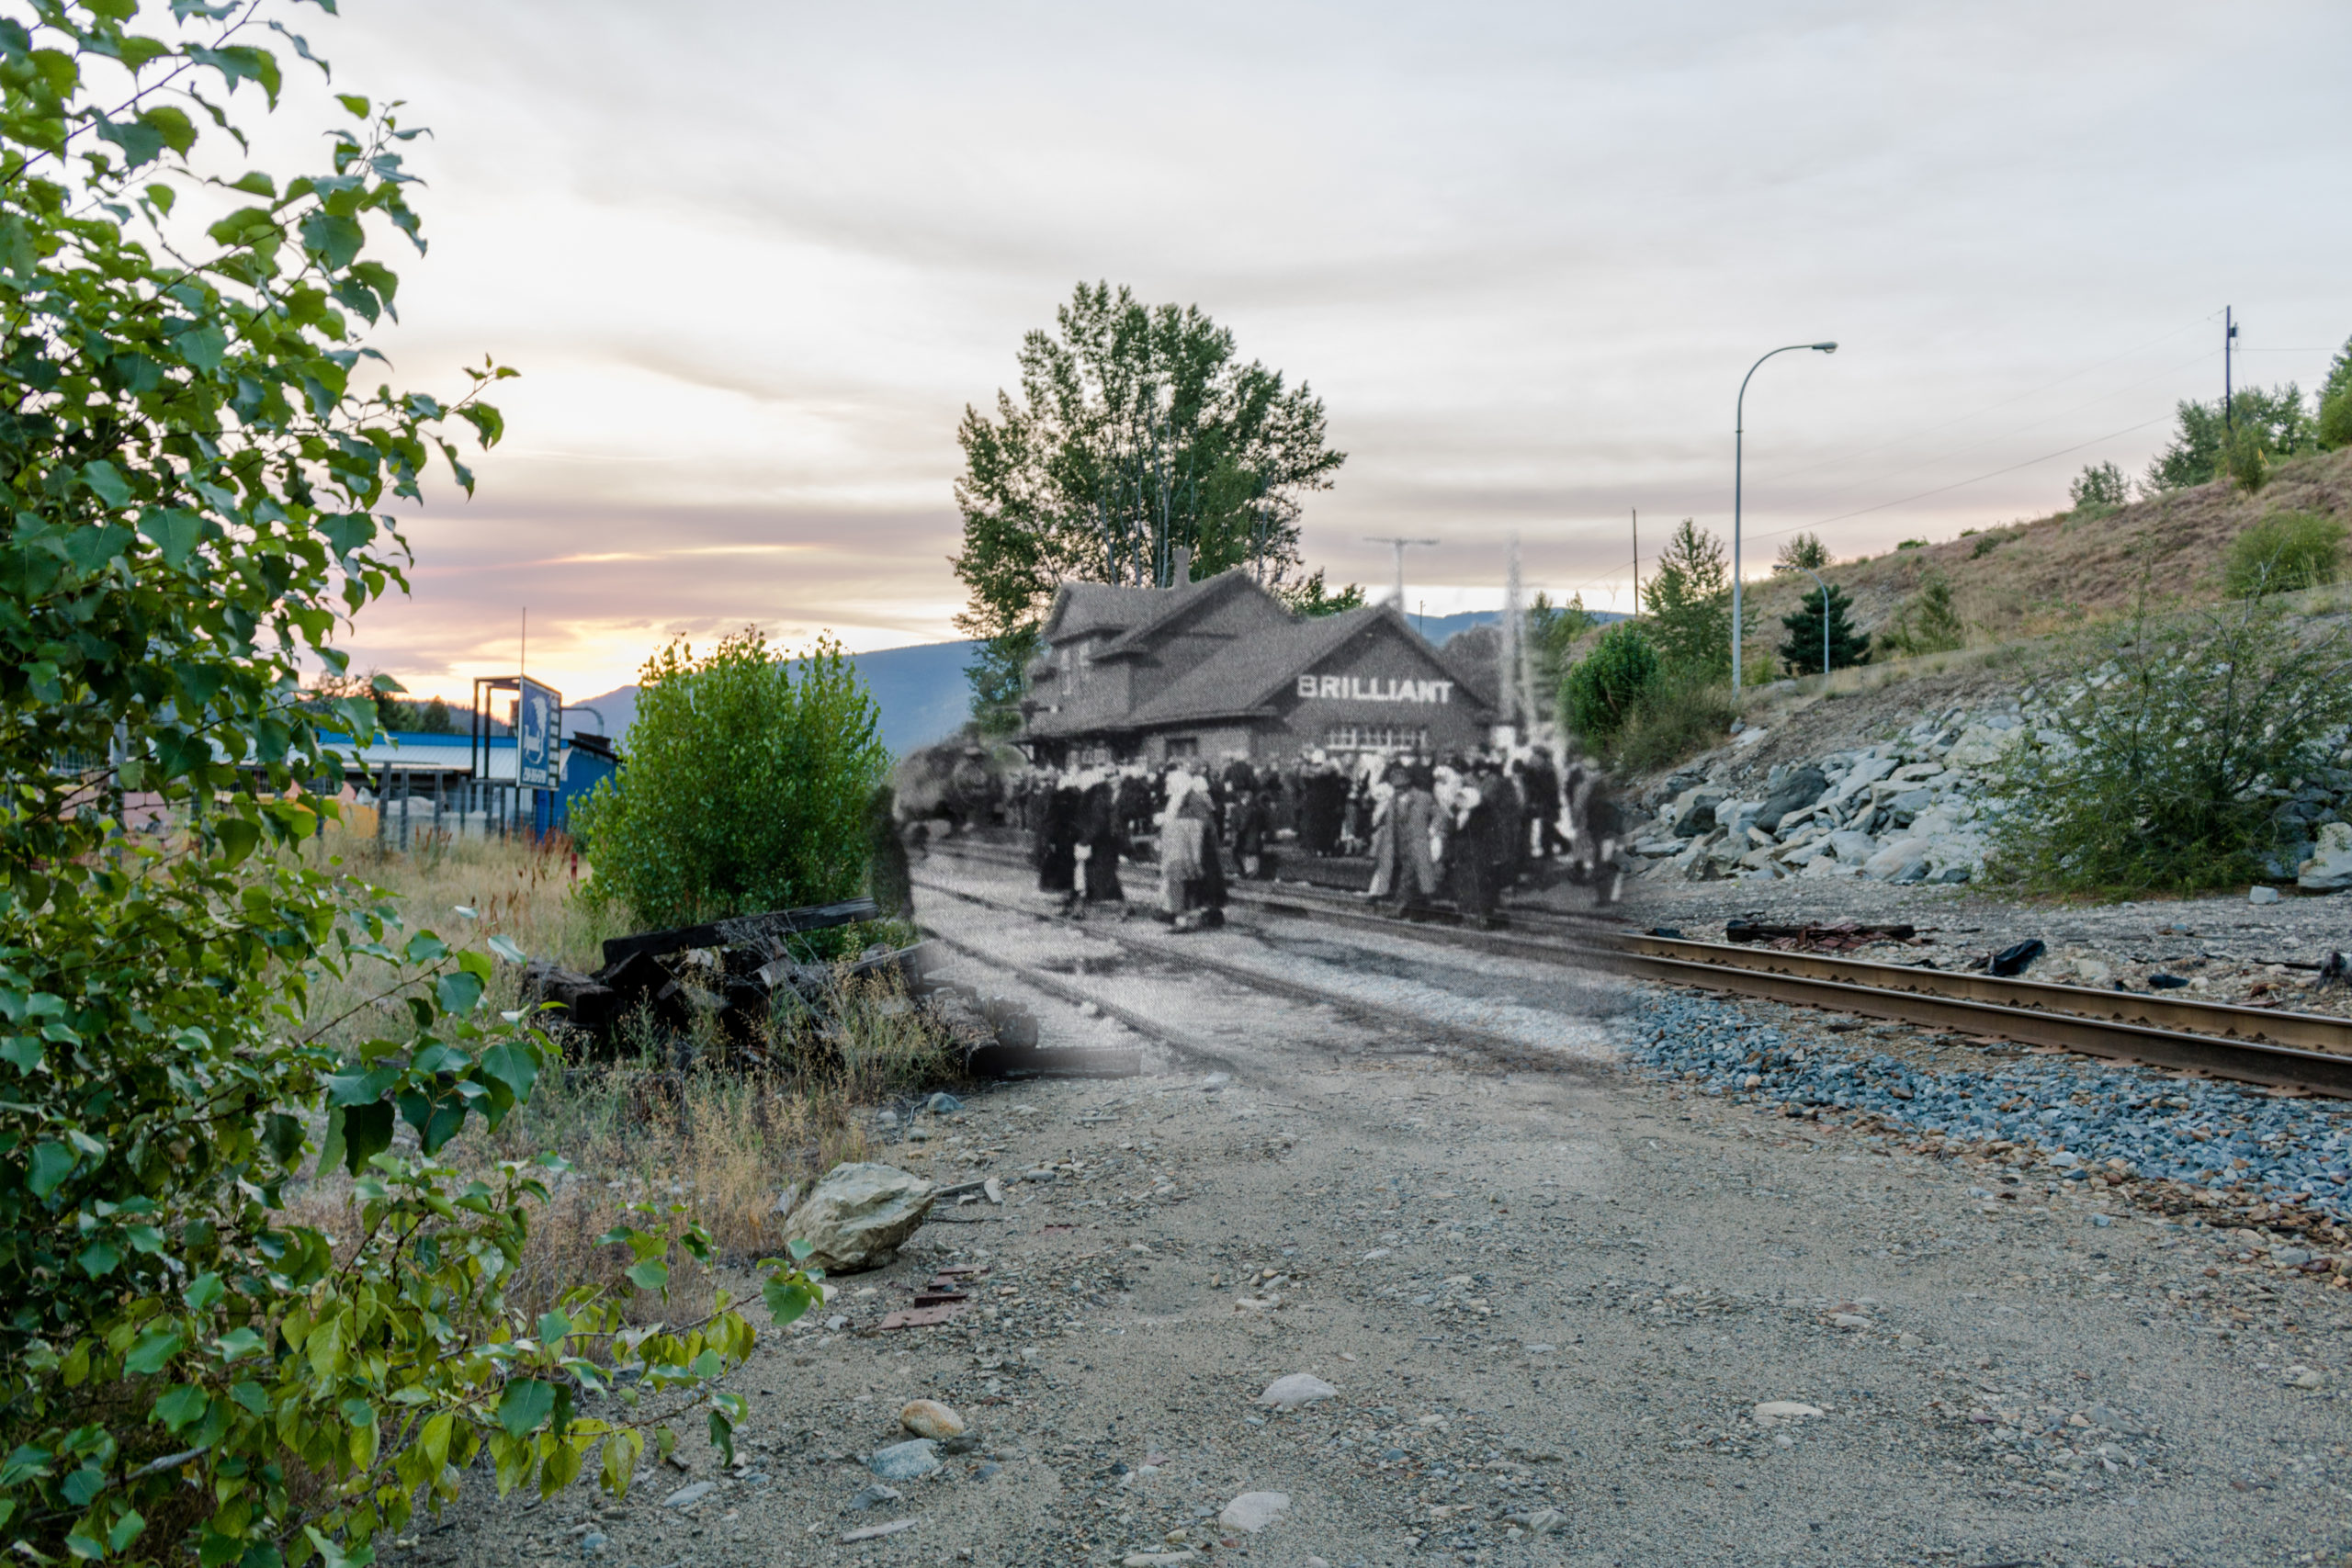 A crossfade showing a historical image of the Brilliant train station imposed onto a modern image of the area